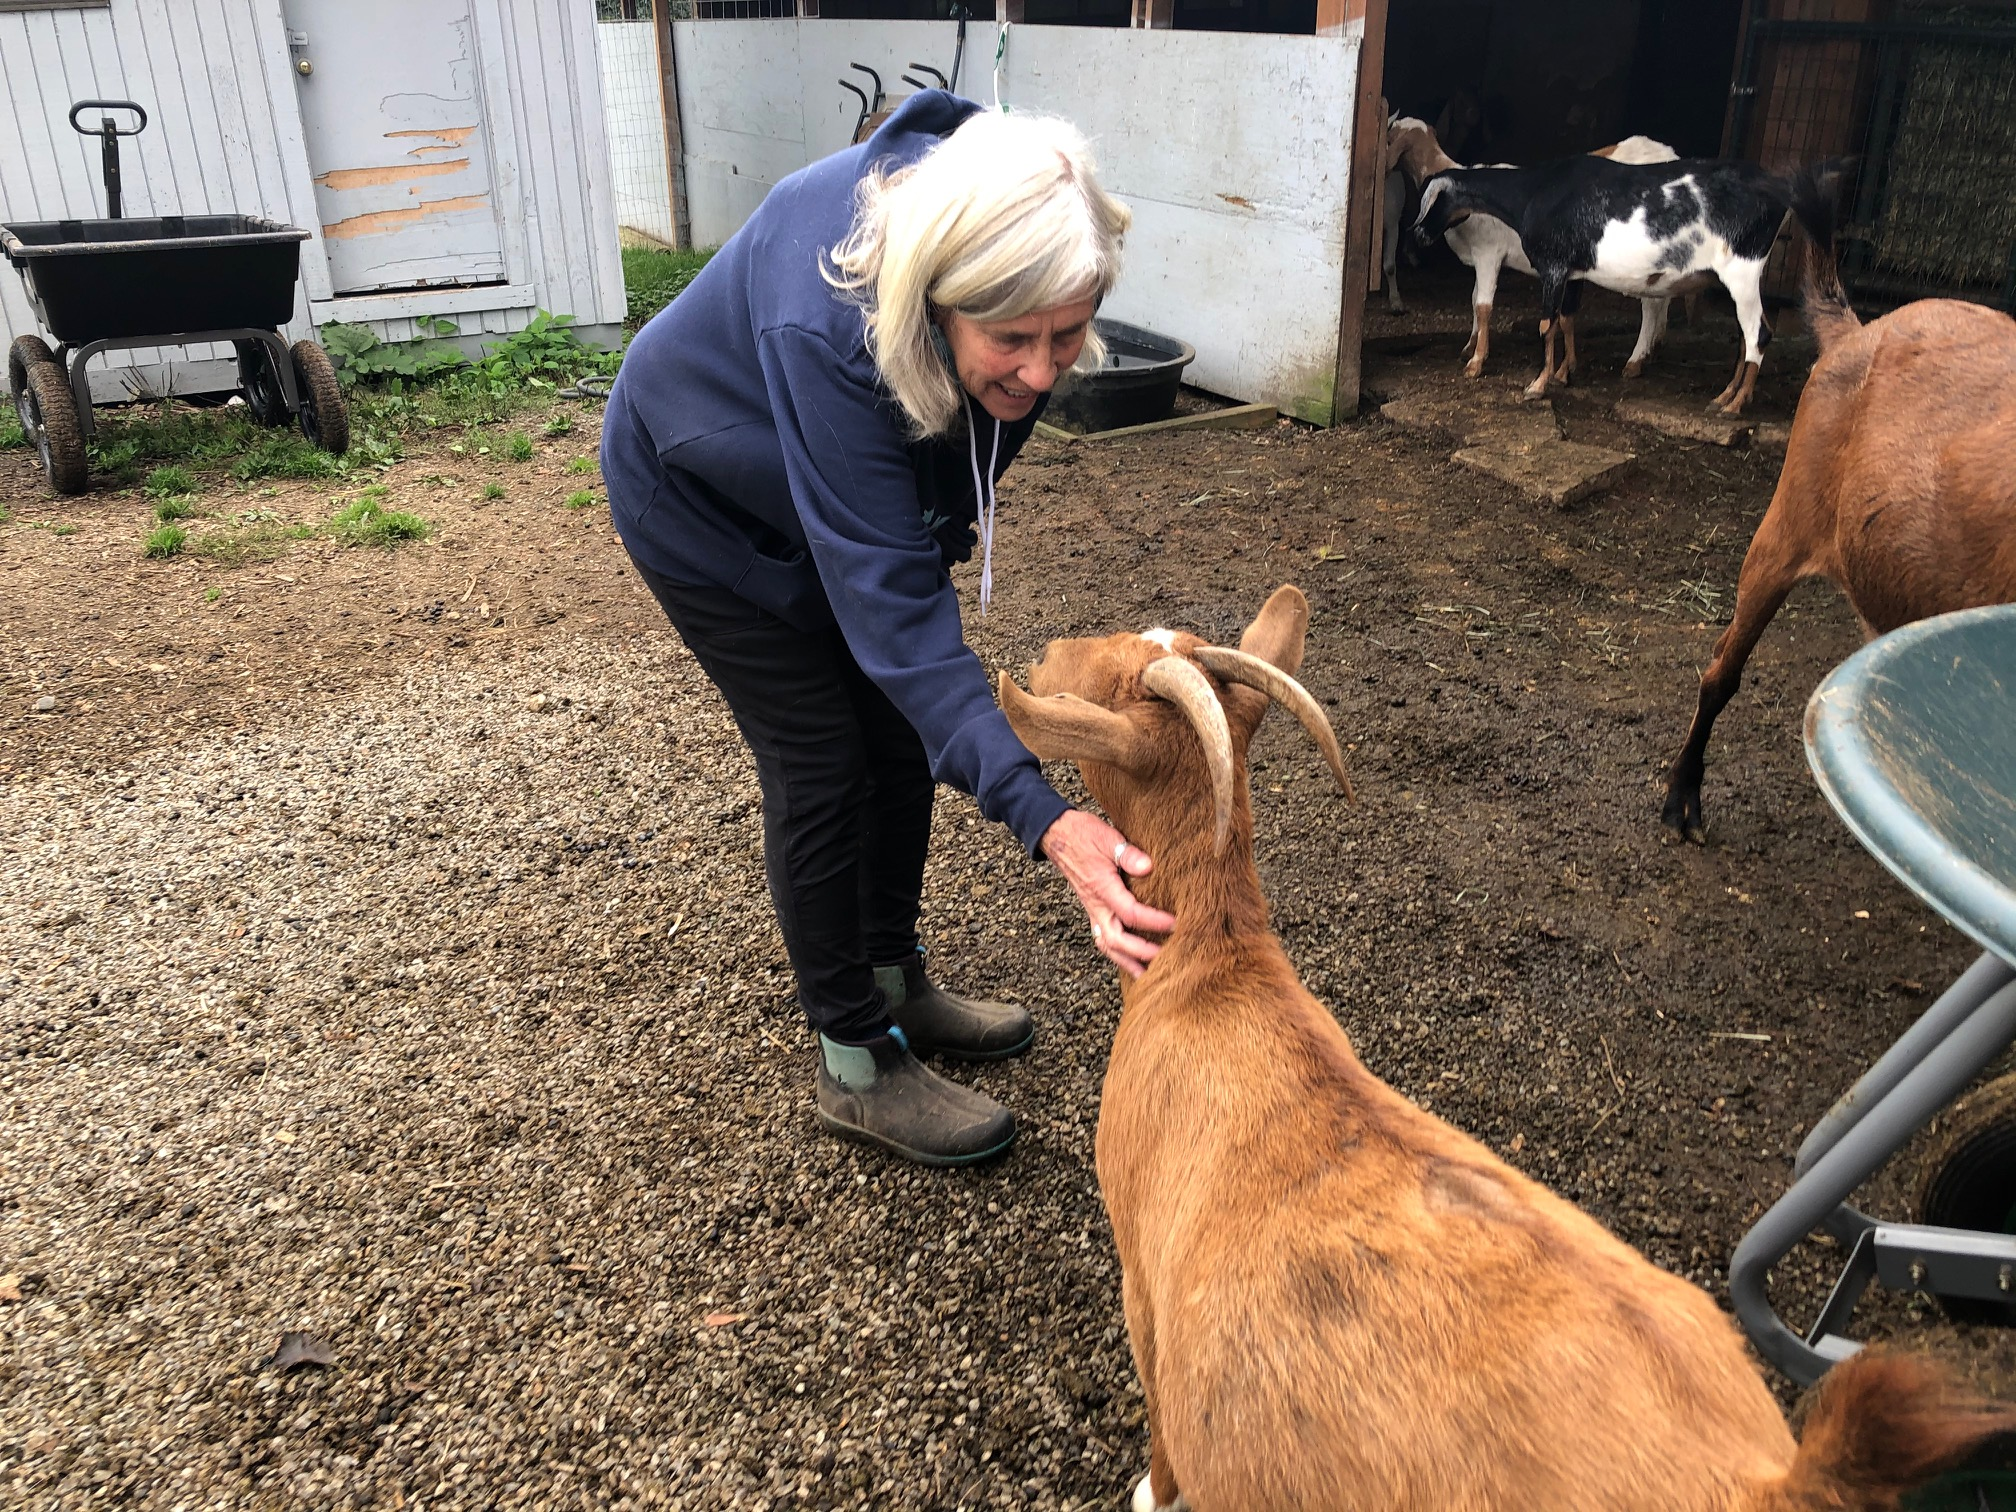 Barbara Jamison started Puget Sound Goat Rescue in 2001. The charity is 100% run by volunteers. (Image: Seattle Refined)